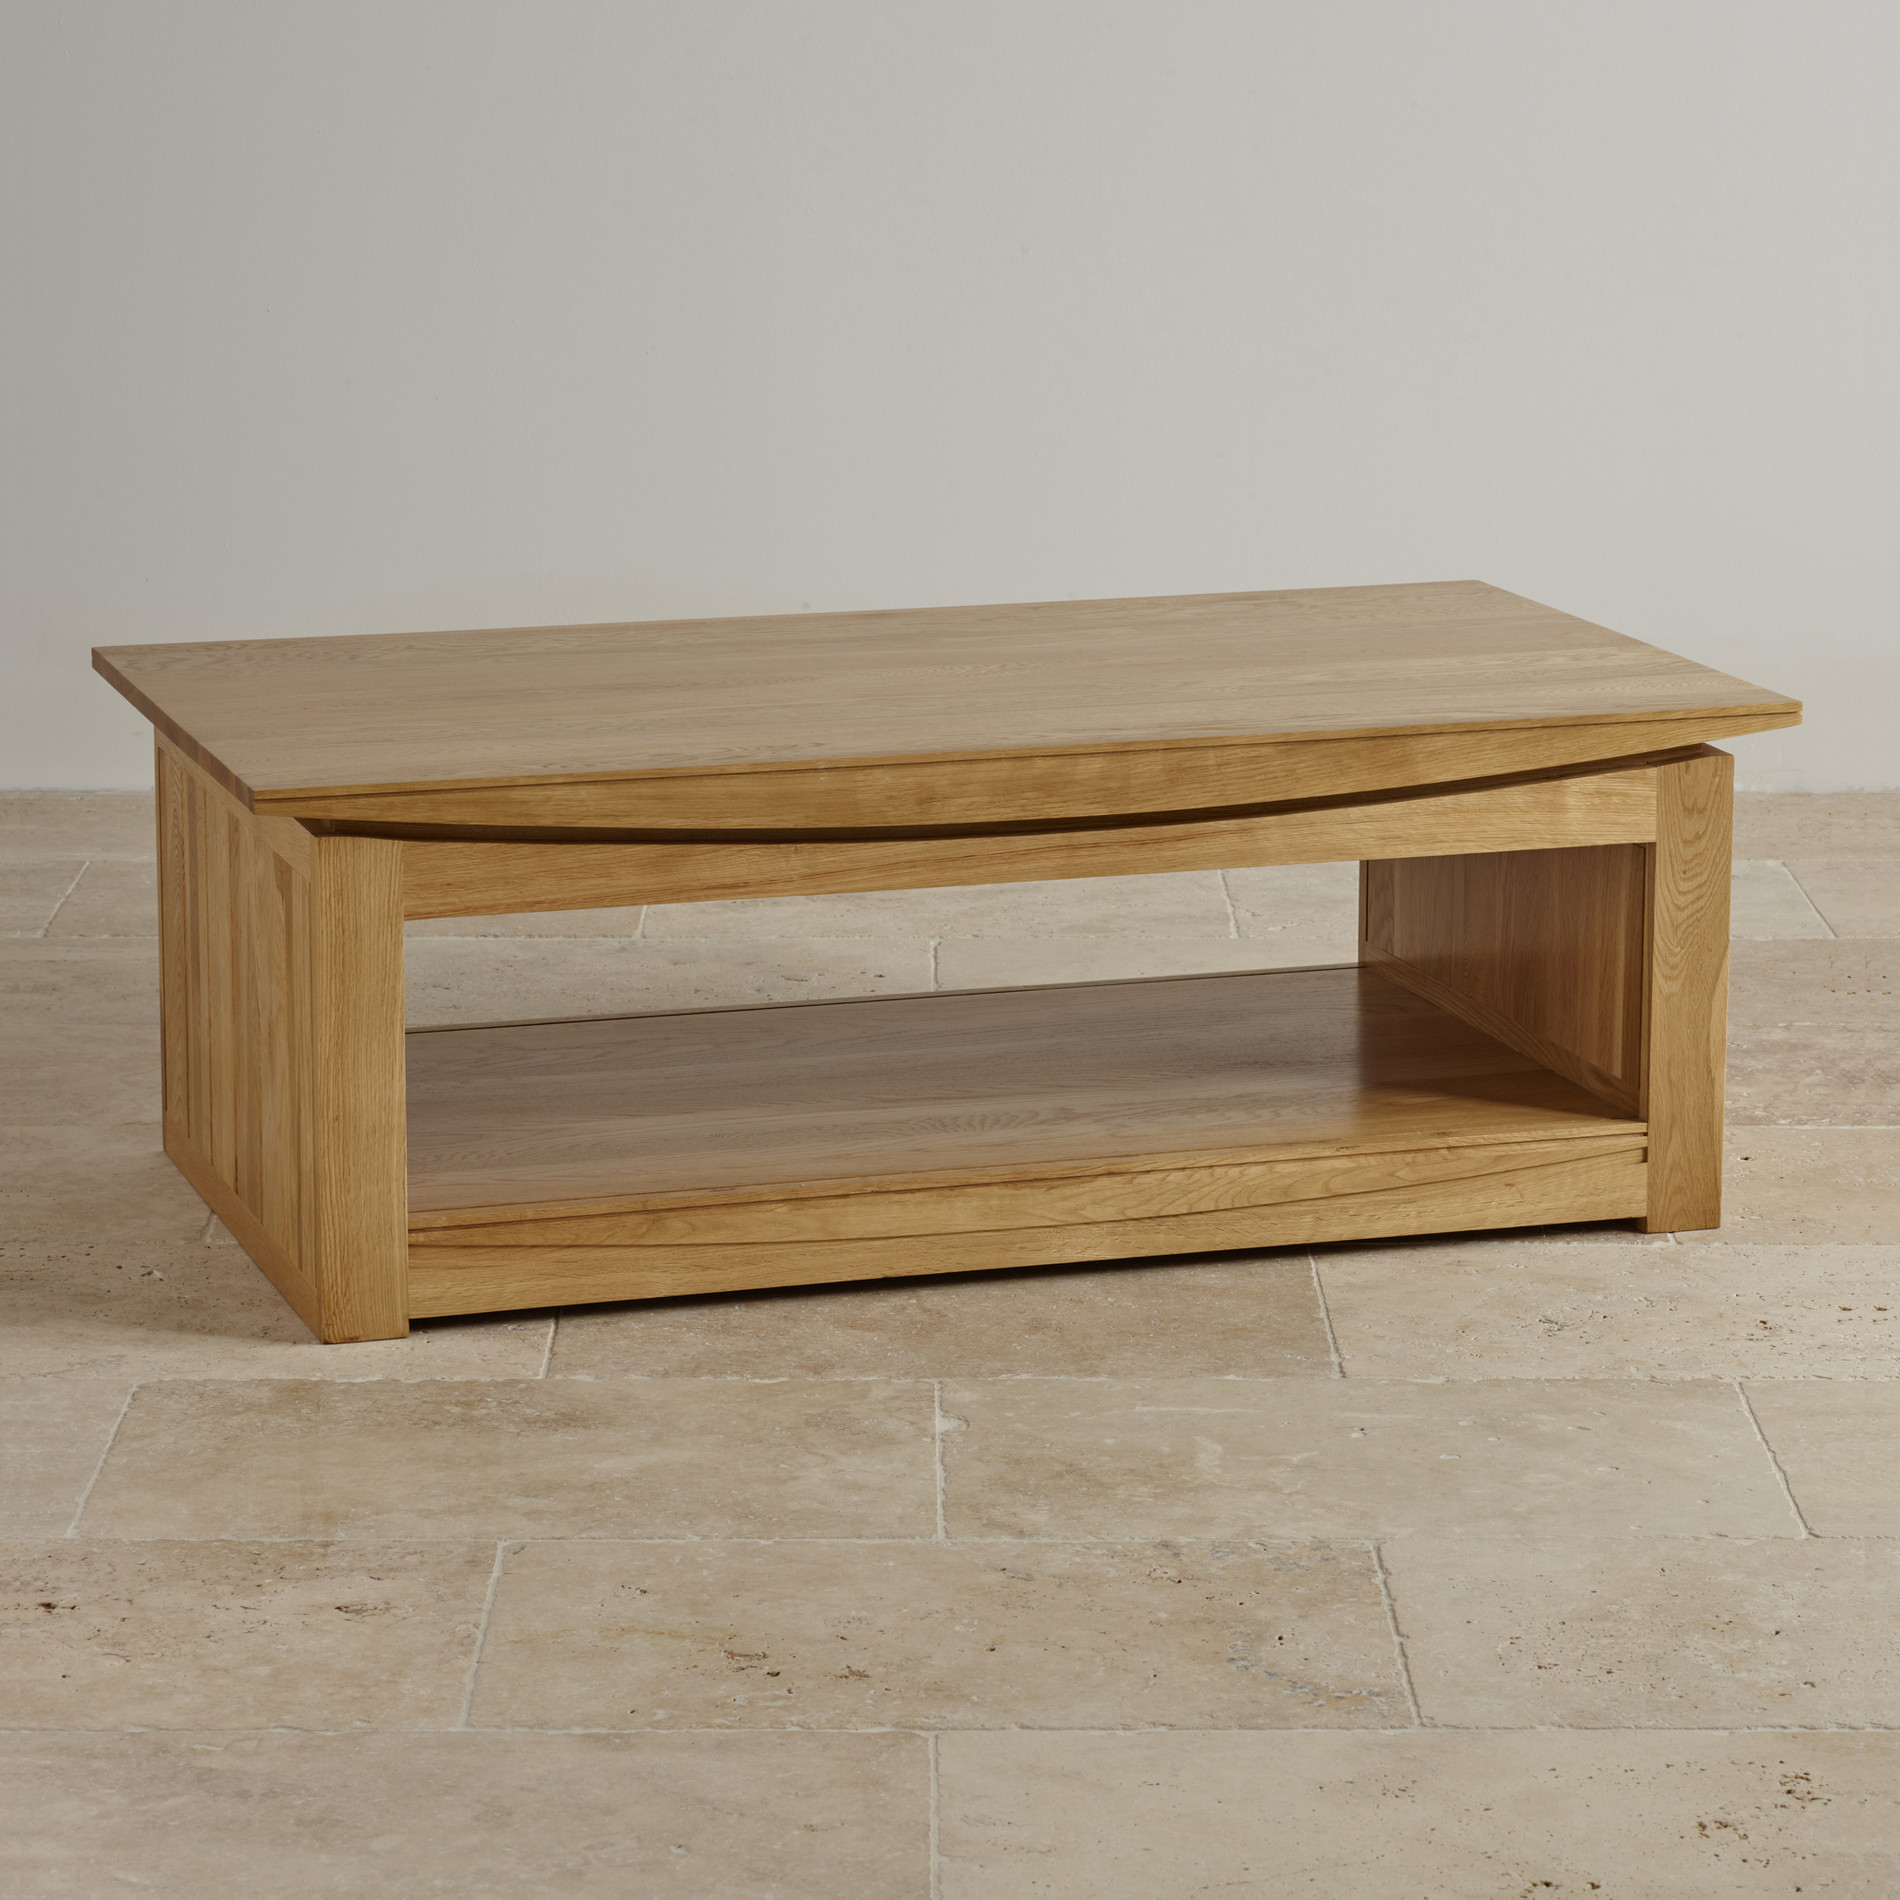 Tokyo natural solid oak large coffee table for Coffee tables 45cm wide